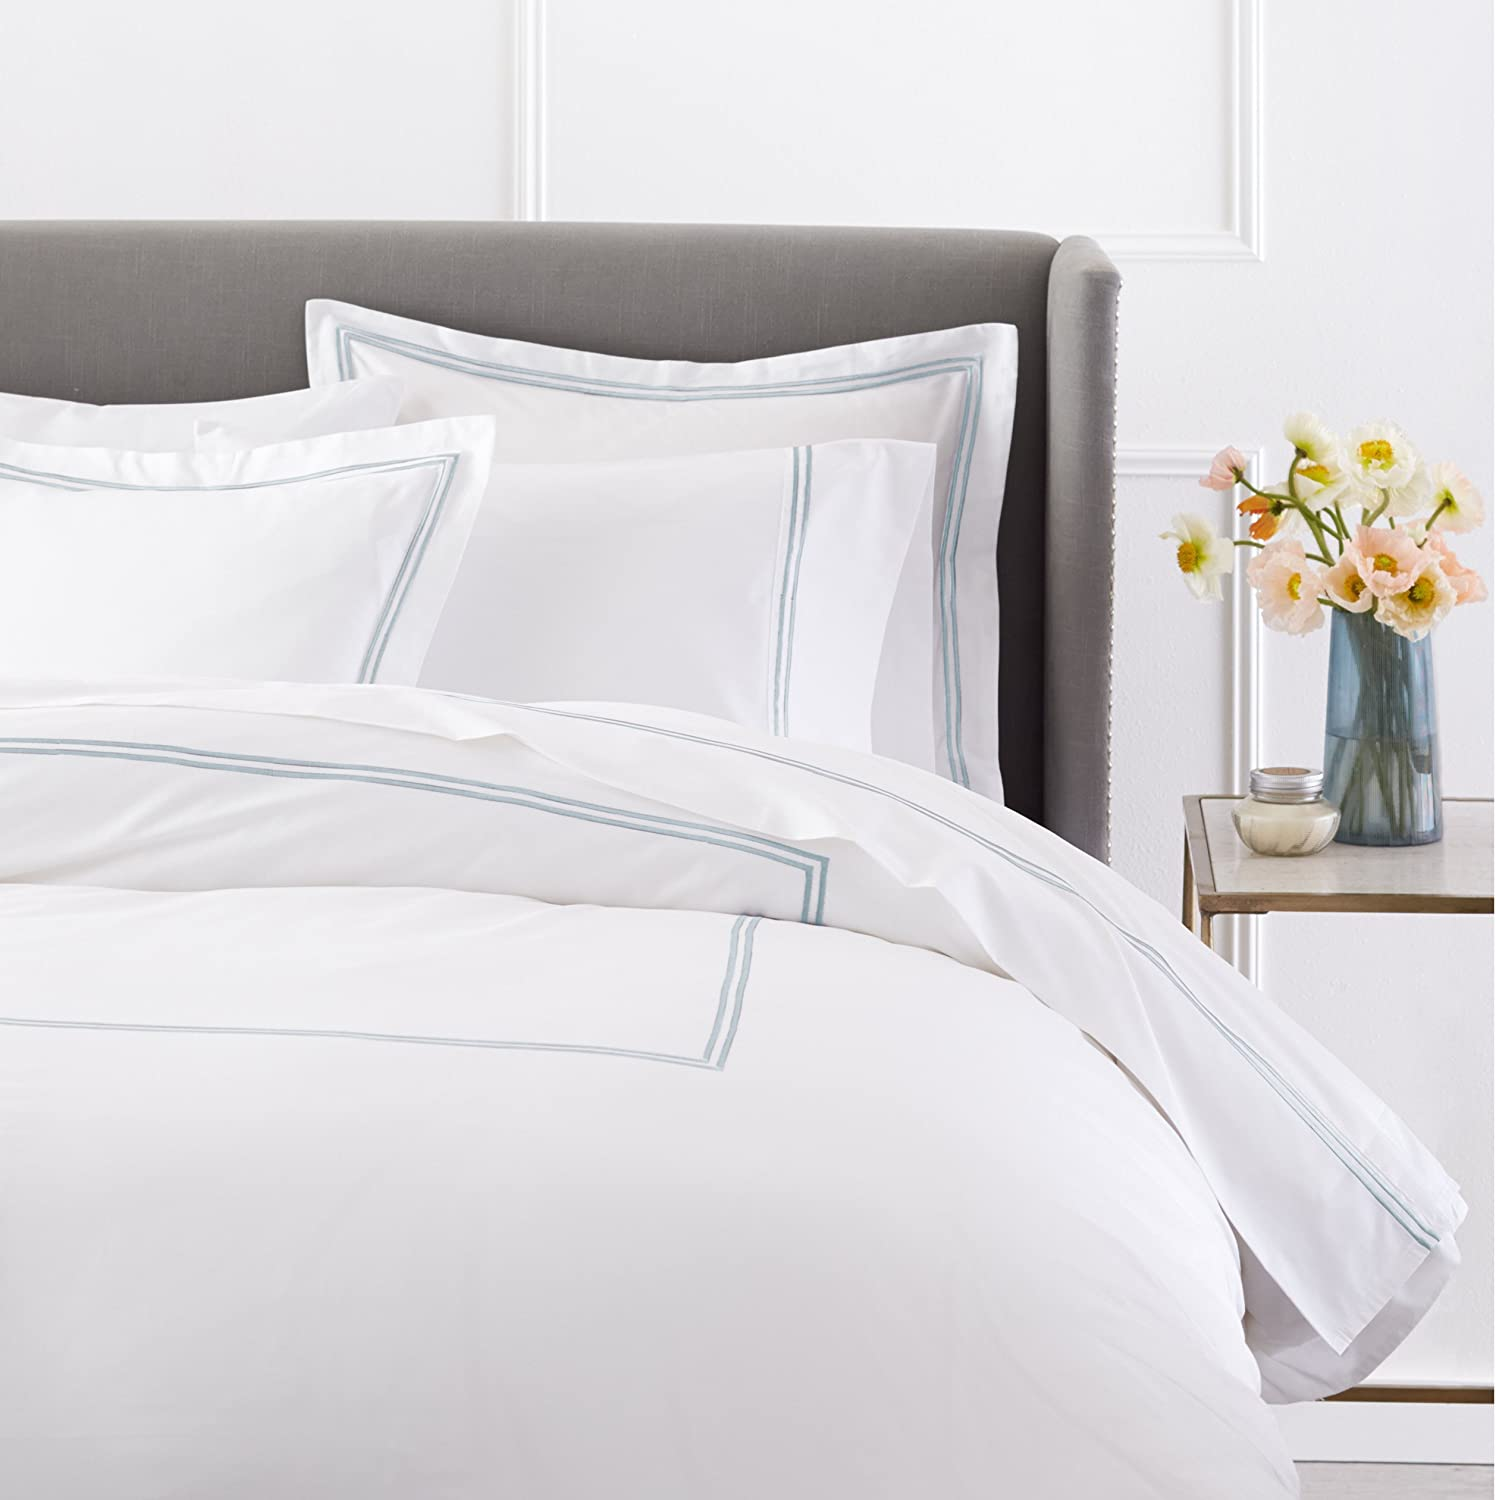 Pinzon 400 Thread Count Egyptian Cotton Sateen Hotel Stitch Duvet Cover - King, Silver Blue